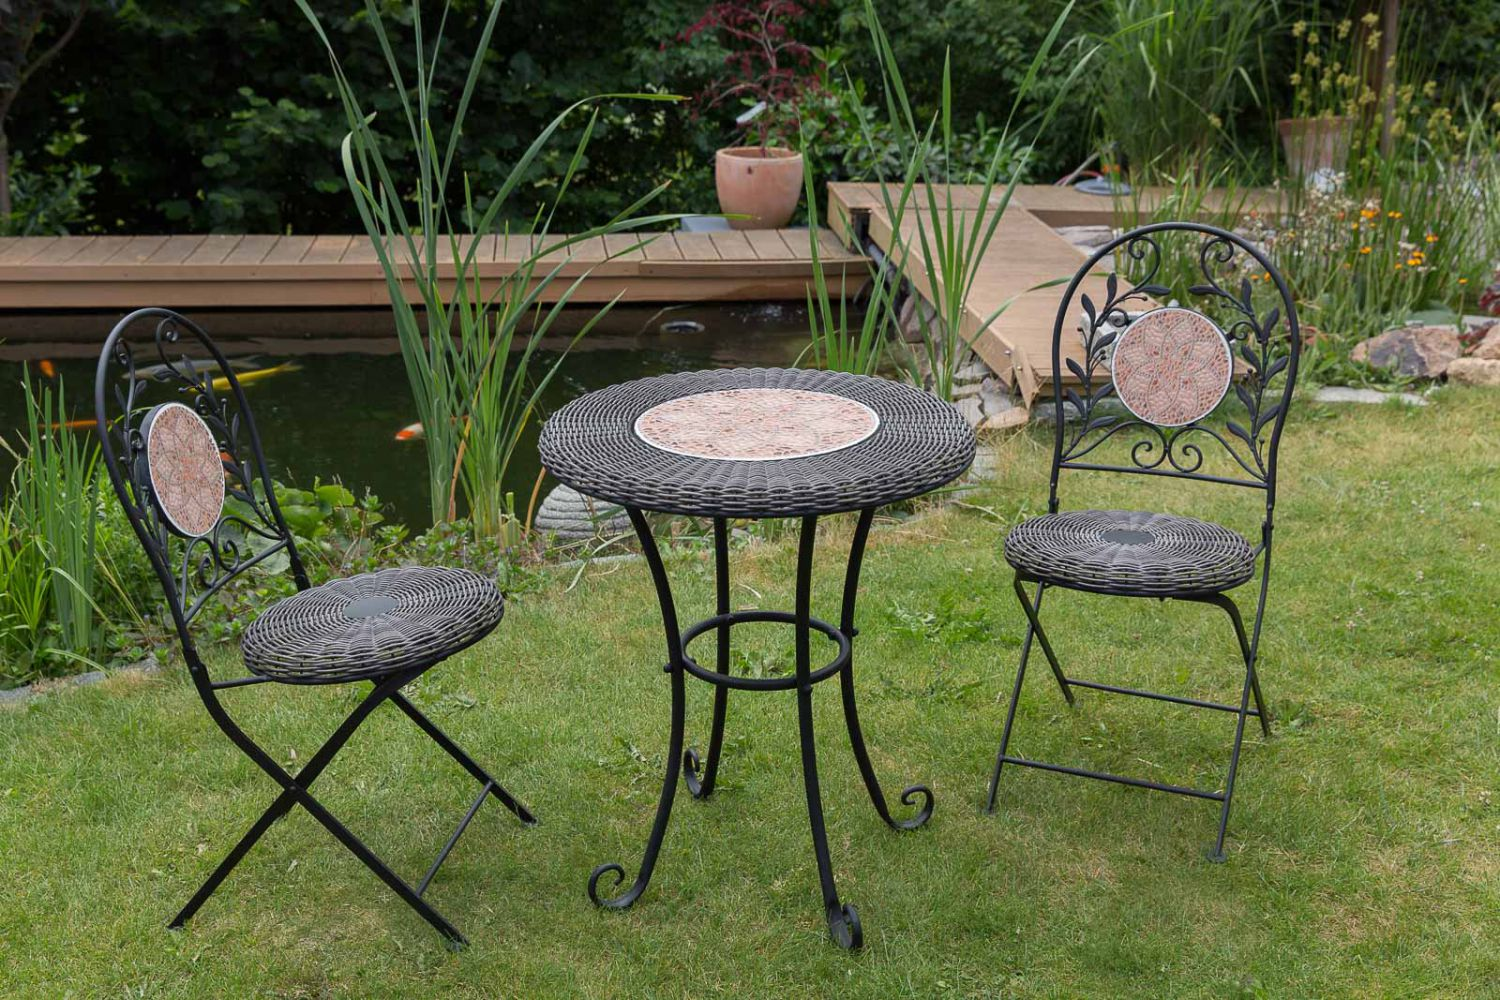 garnitur gartenset eisen gartenm bel garten schwarz antik stil garden furniture ebay. Black Bedroom Furniture Sets. Home Design Ideas